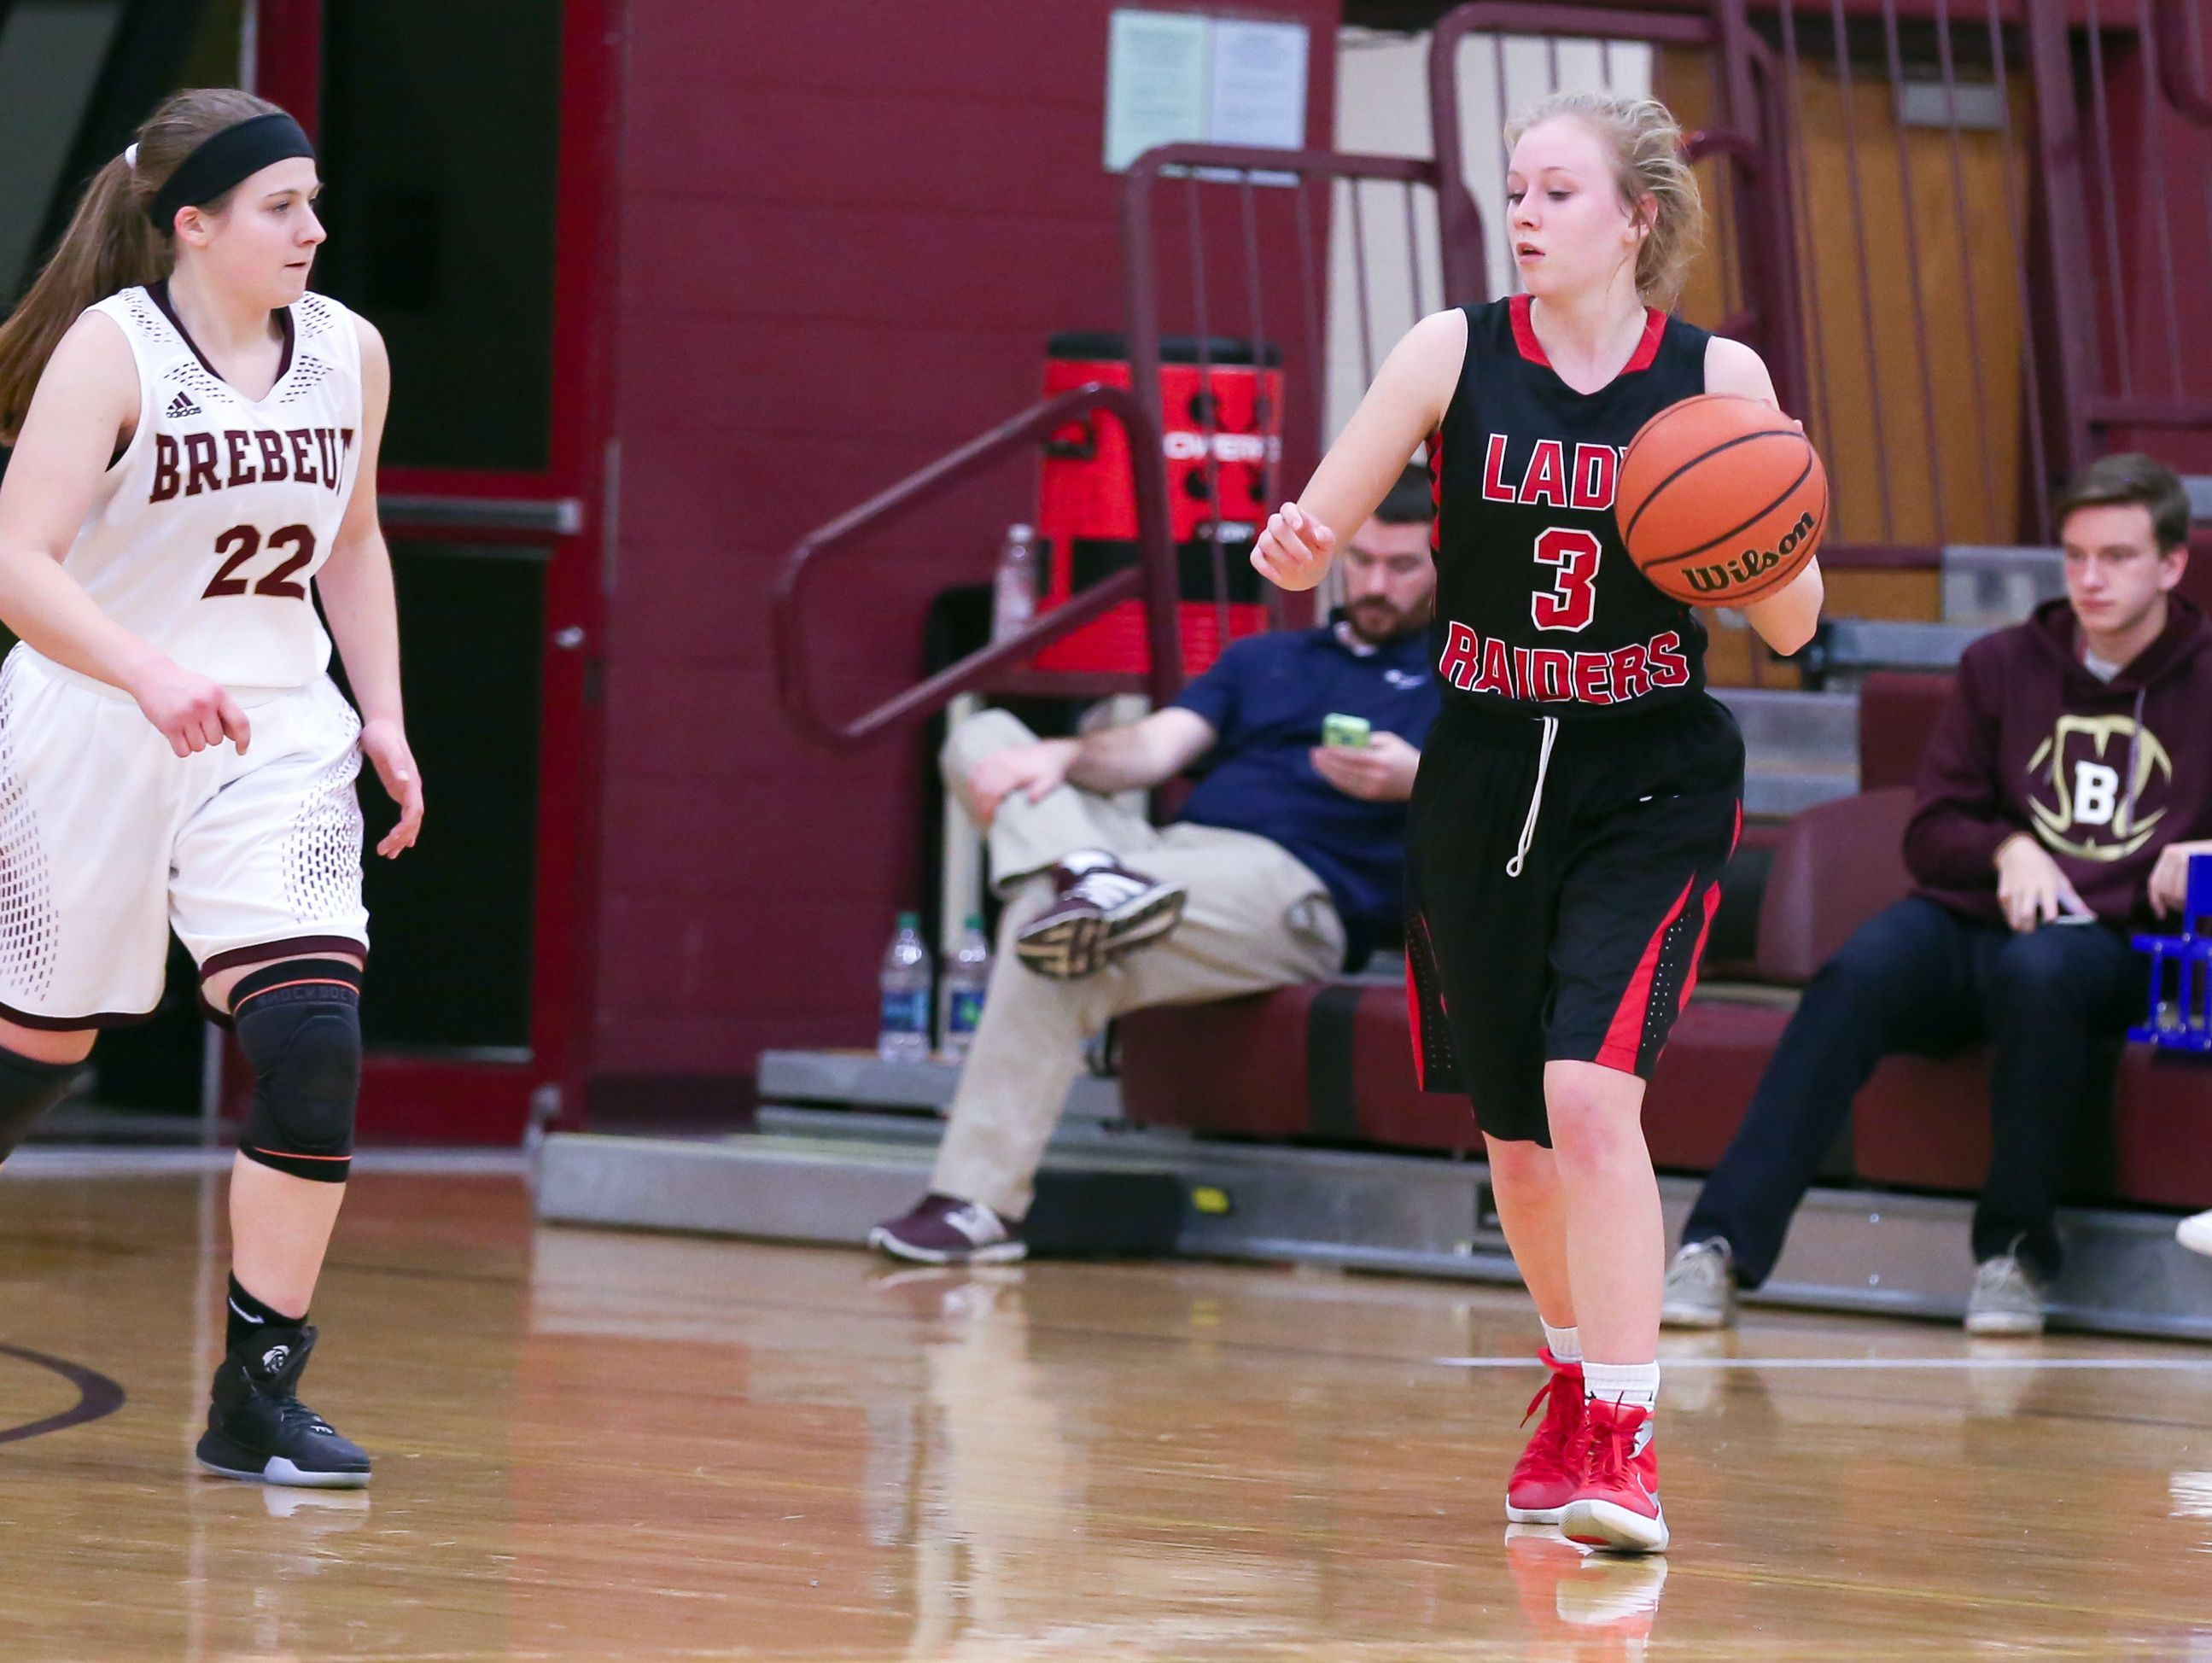 Cardinal Ritter's Abby Downard (right) averaged 15.0 points a game last season.